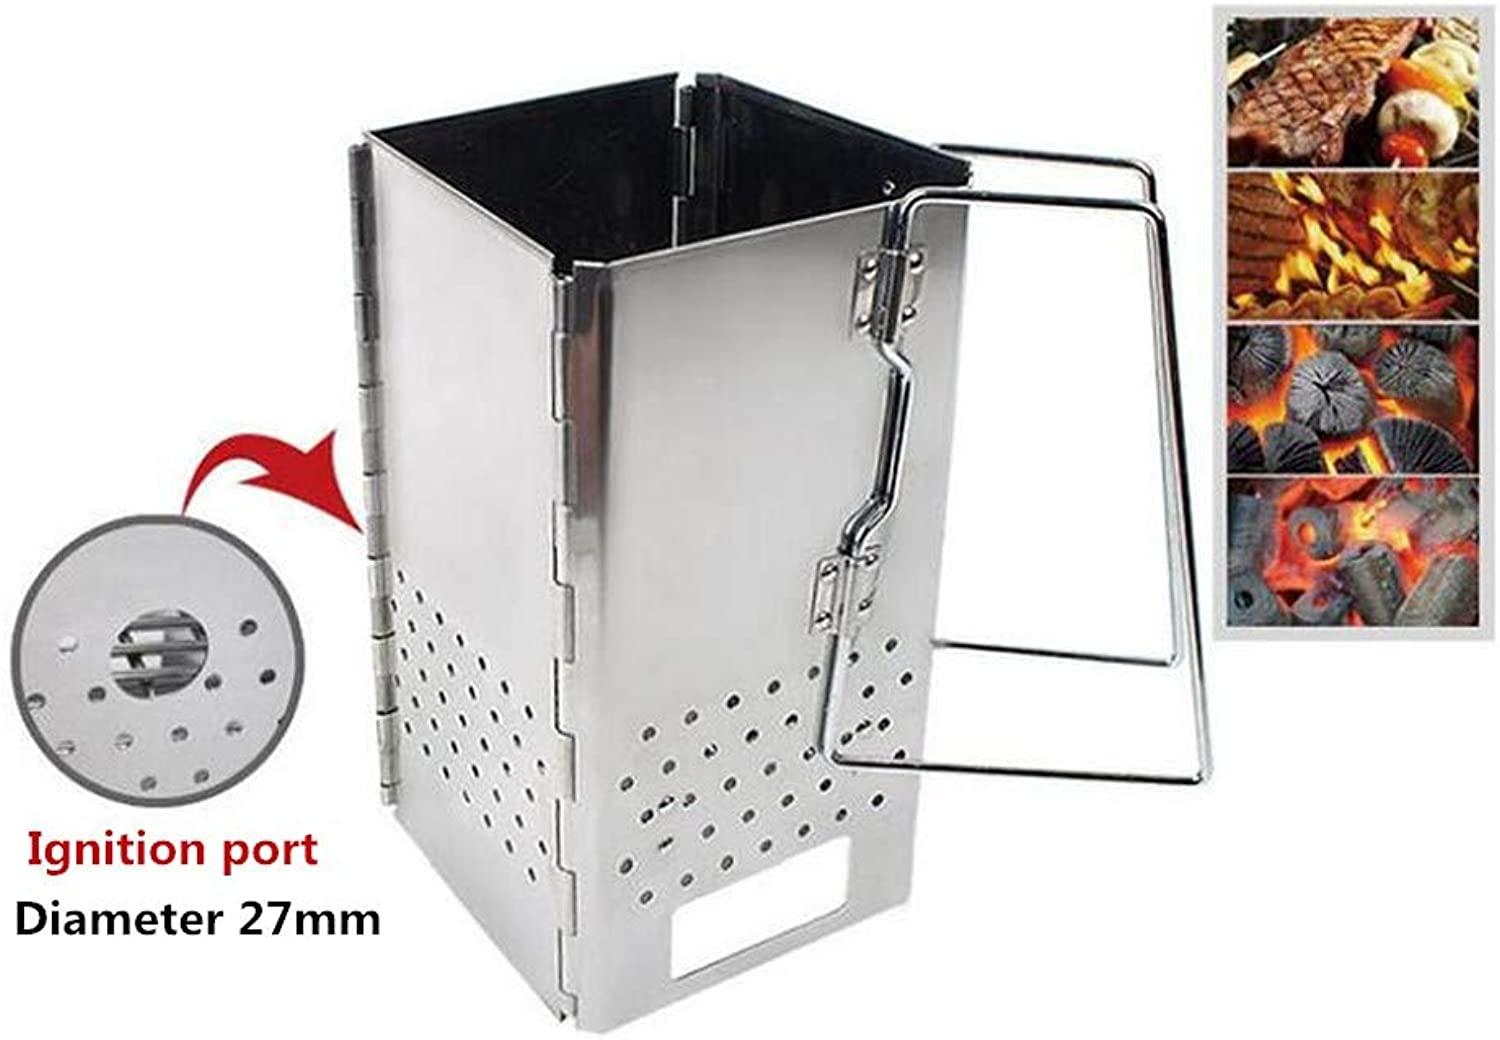 Meiyiu Outdoor Wood Stove Folding Grill Stainless Steel Portable Camping Stove